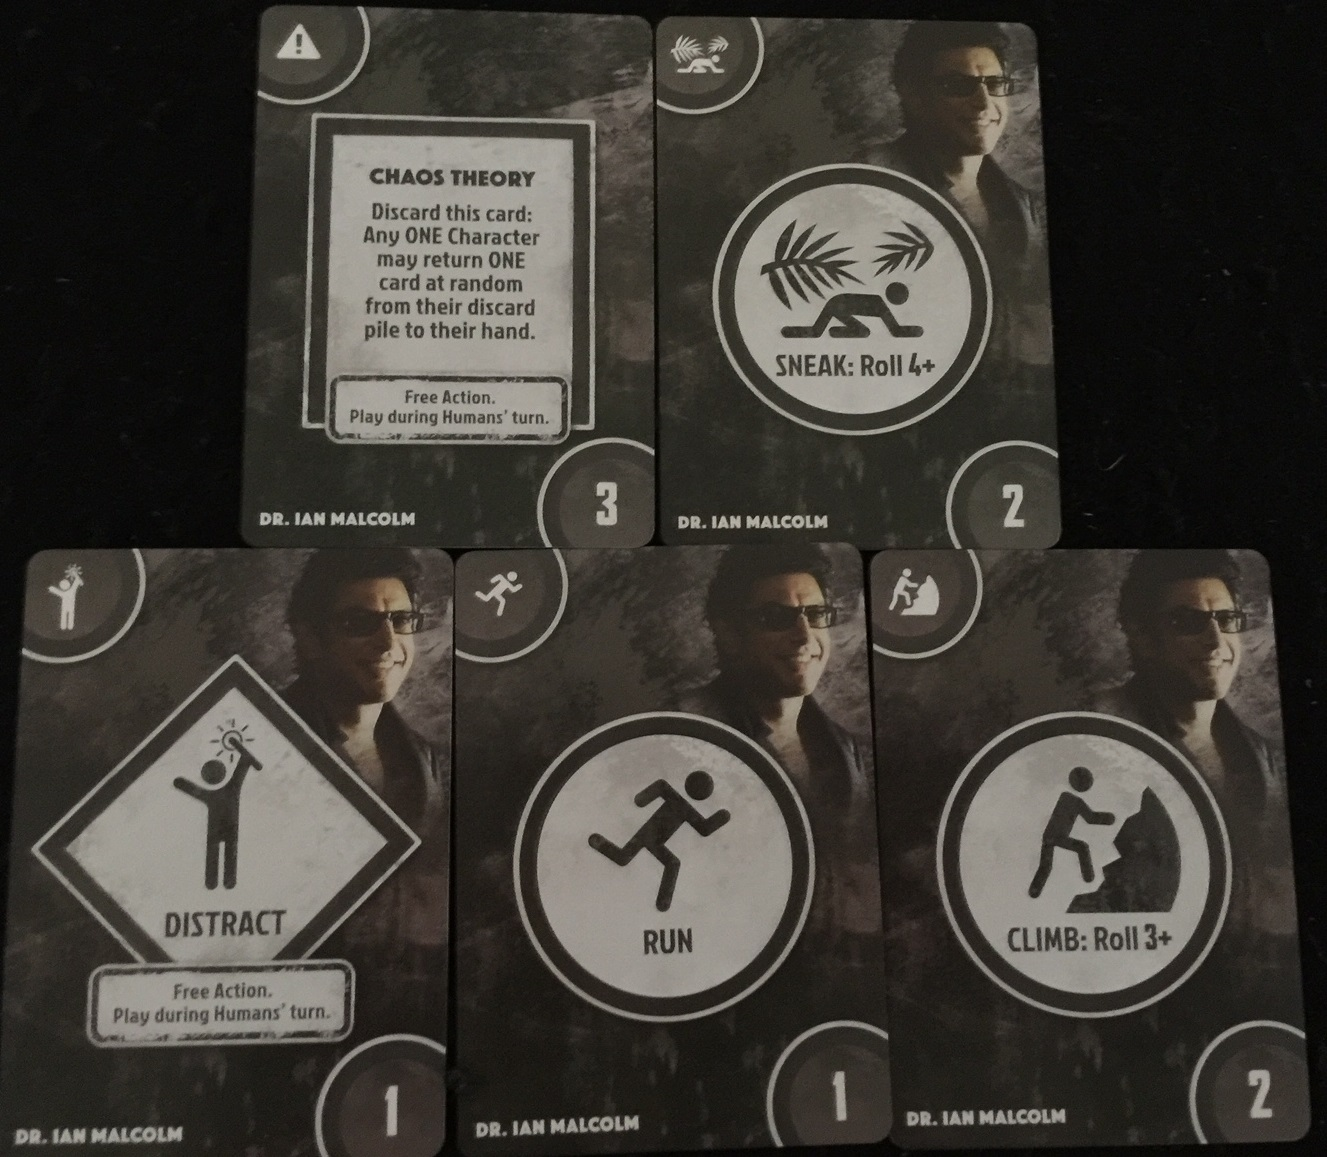 'Dr. Ian Malcolm's Action Cards